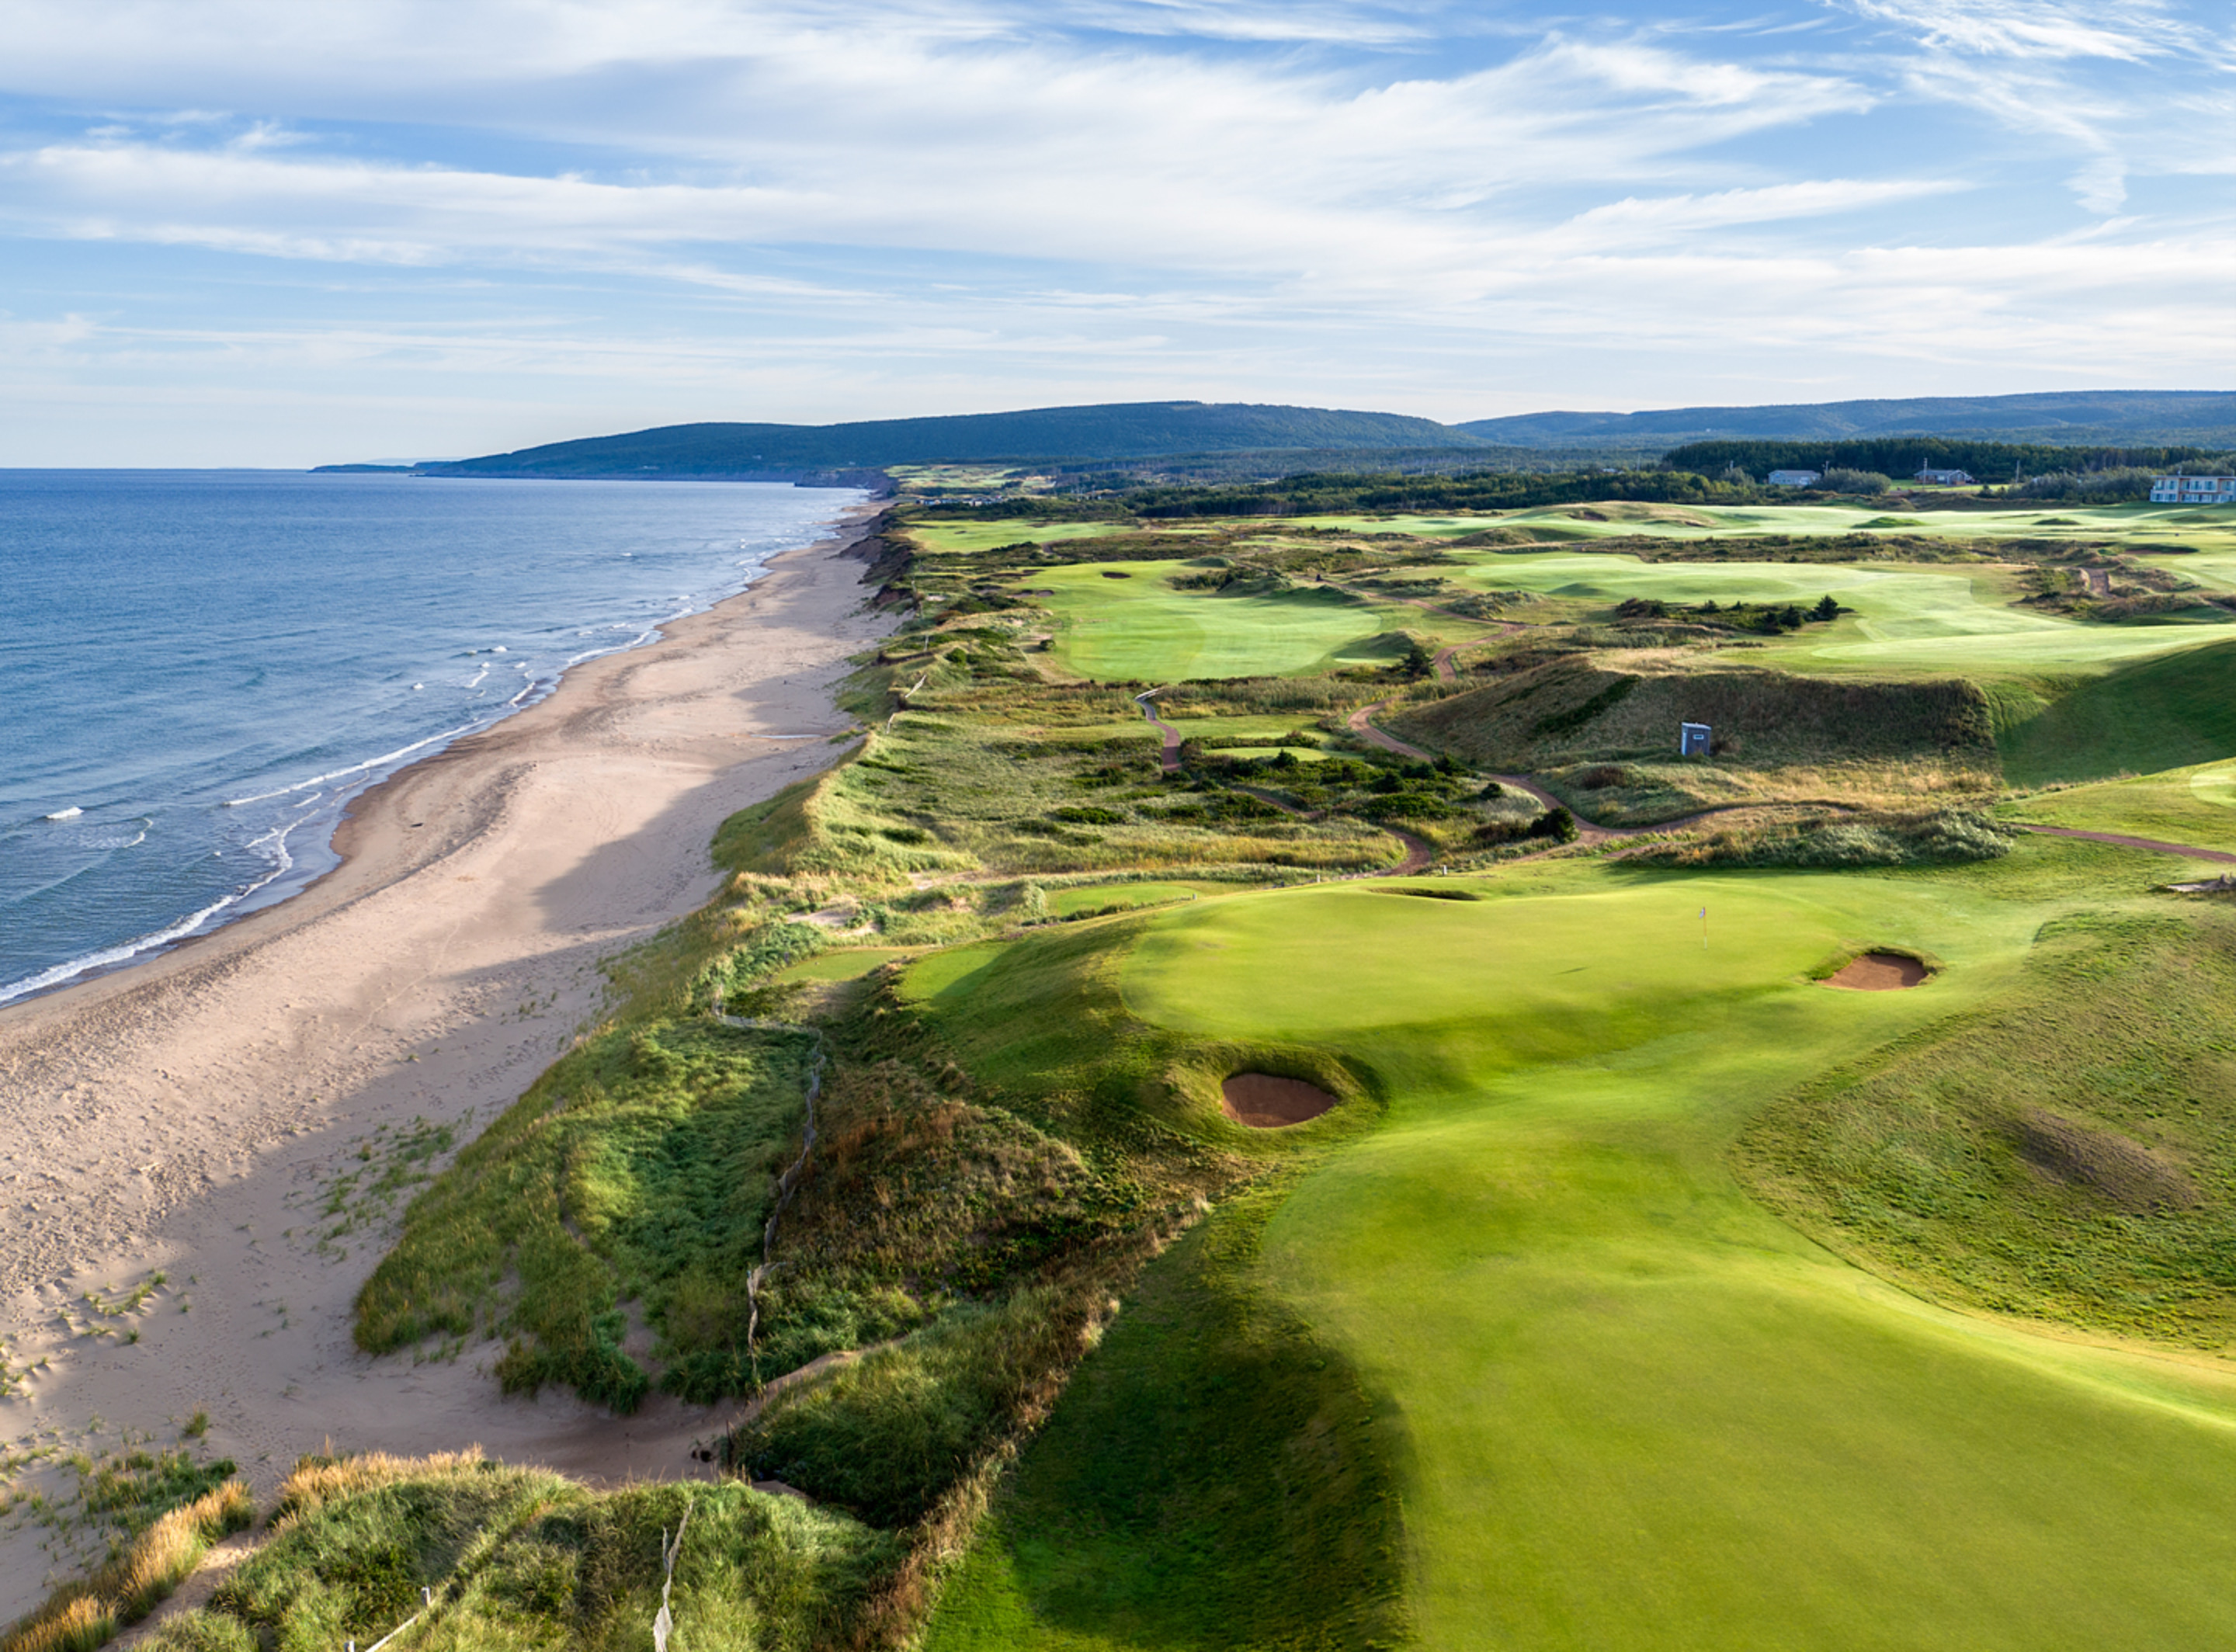 14th & 15th Holes, Cabot Links